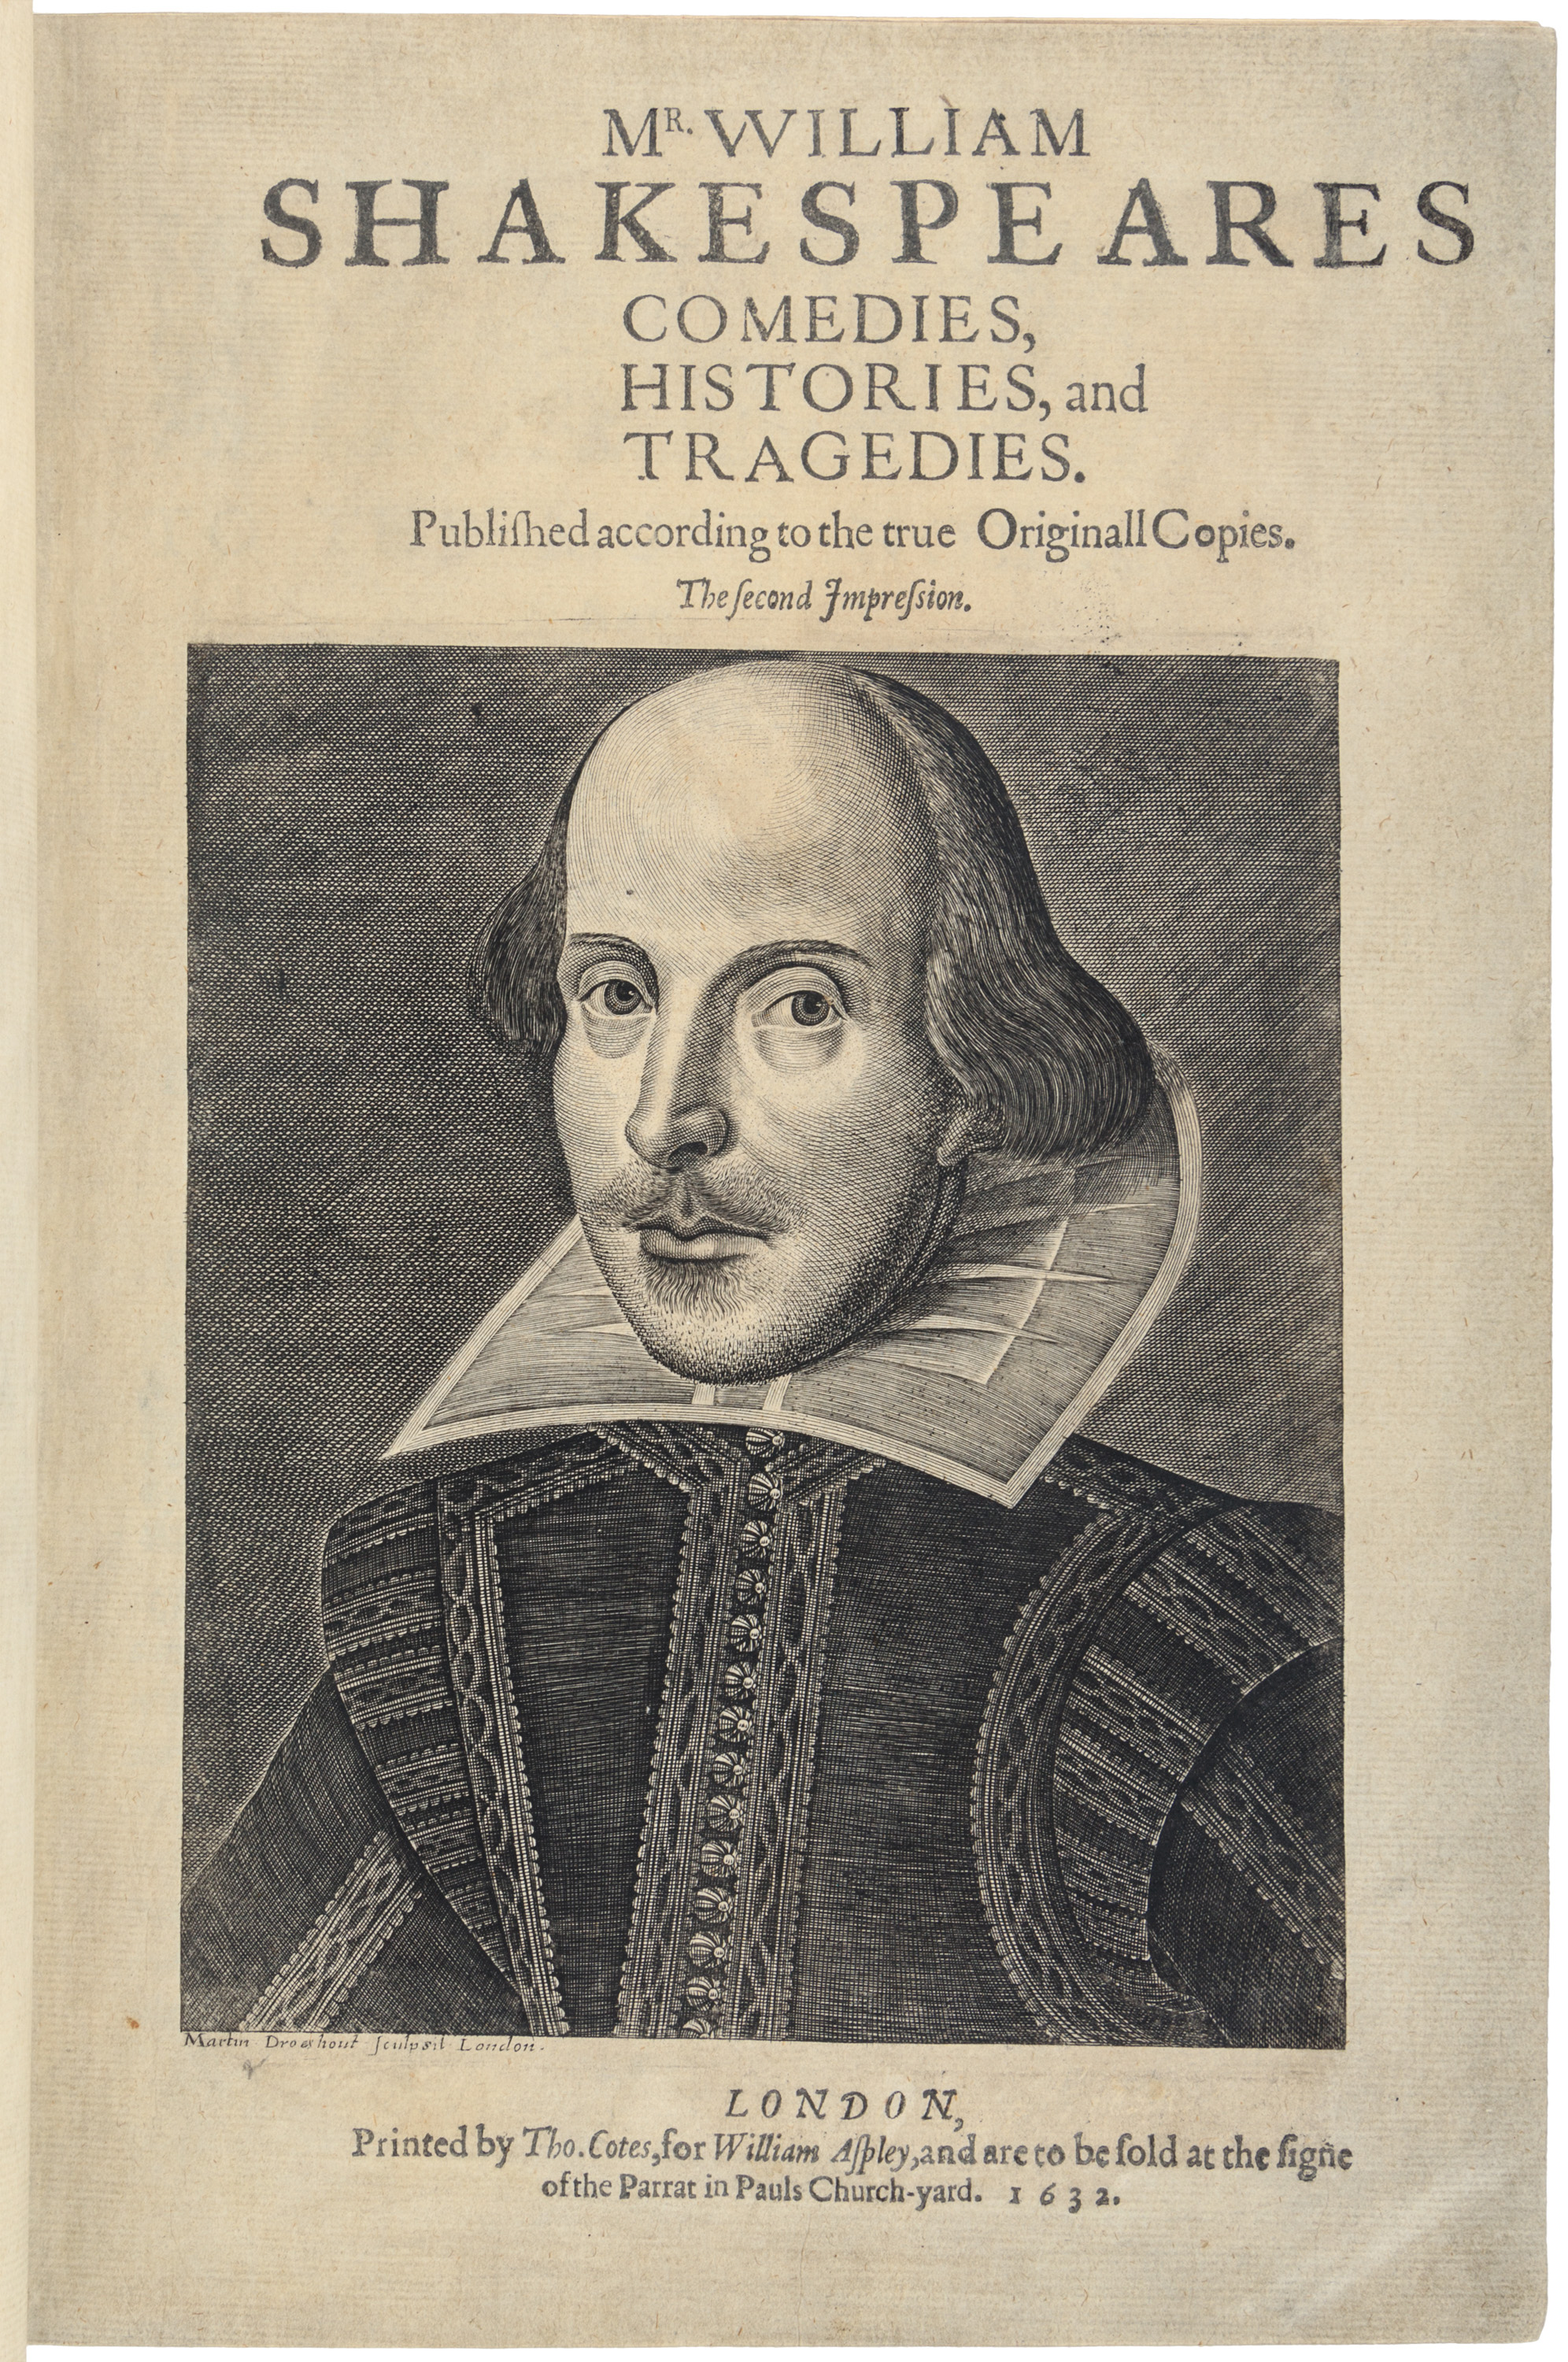 Mr William Shakespeares Comedies, Histories, and Tragedies...The Second Impression